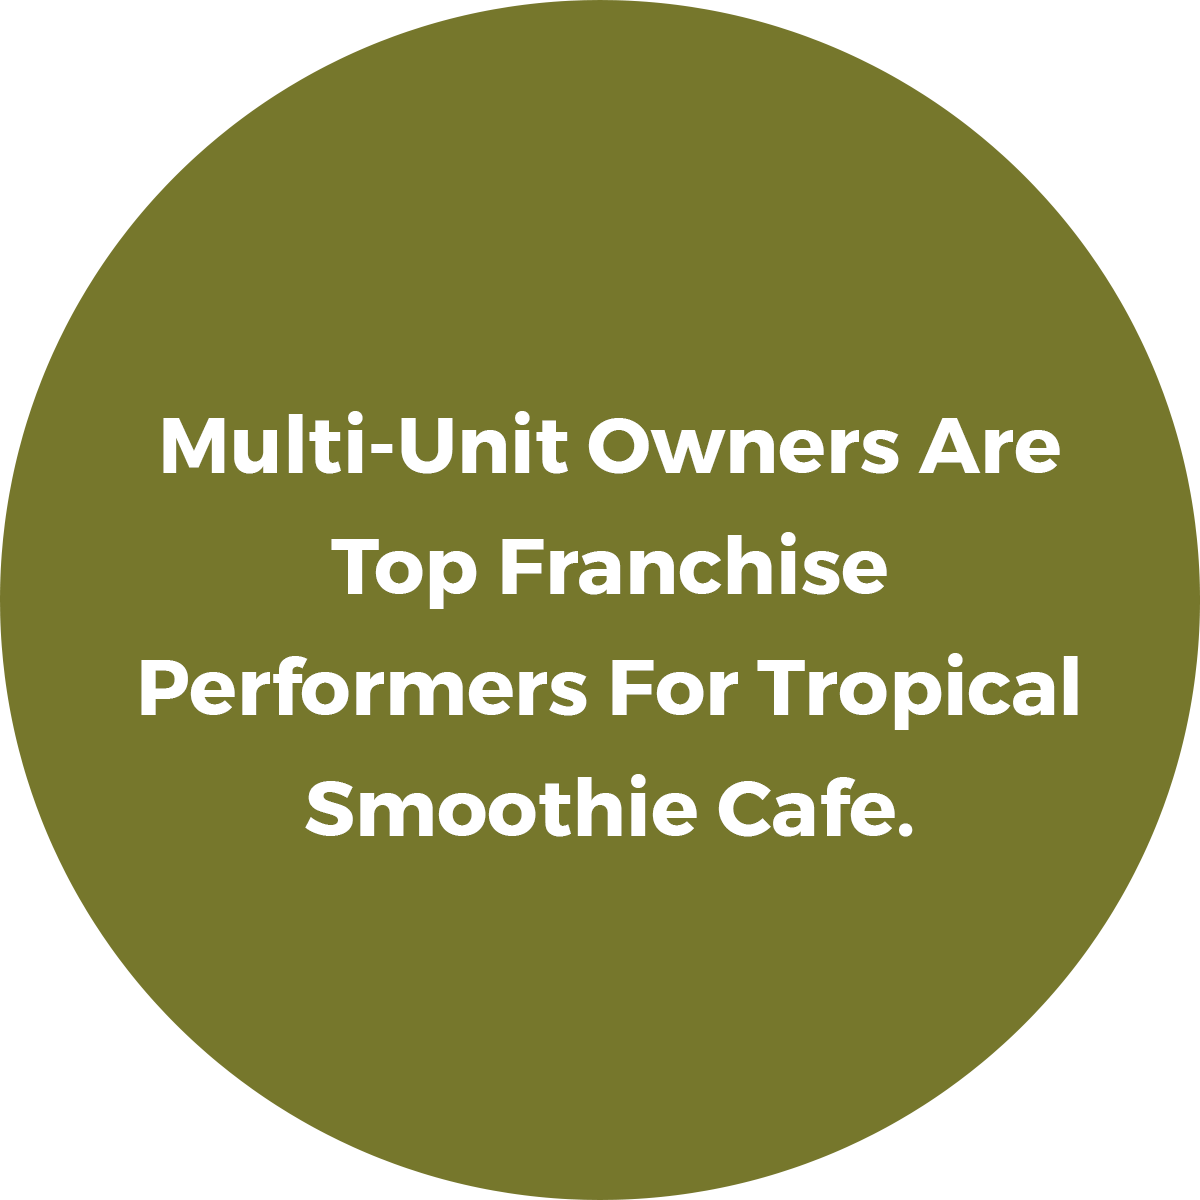 Multi-Unit Owners are Top Franchise Performers for Tropical Smoothie Cafe